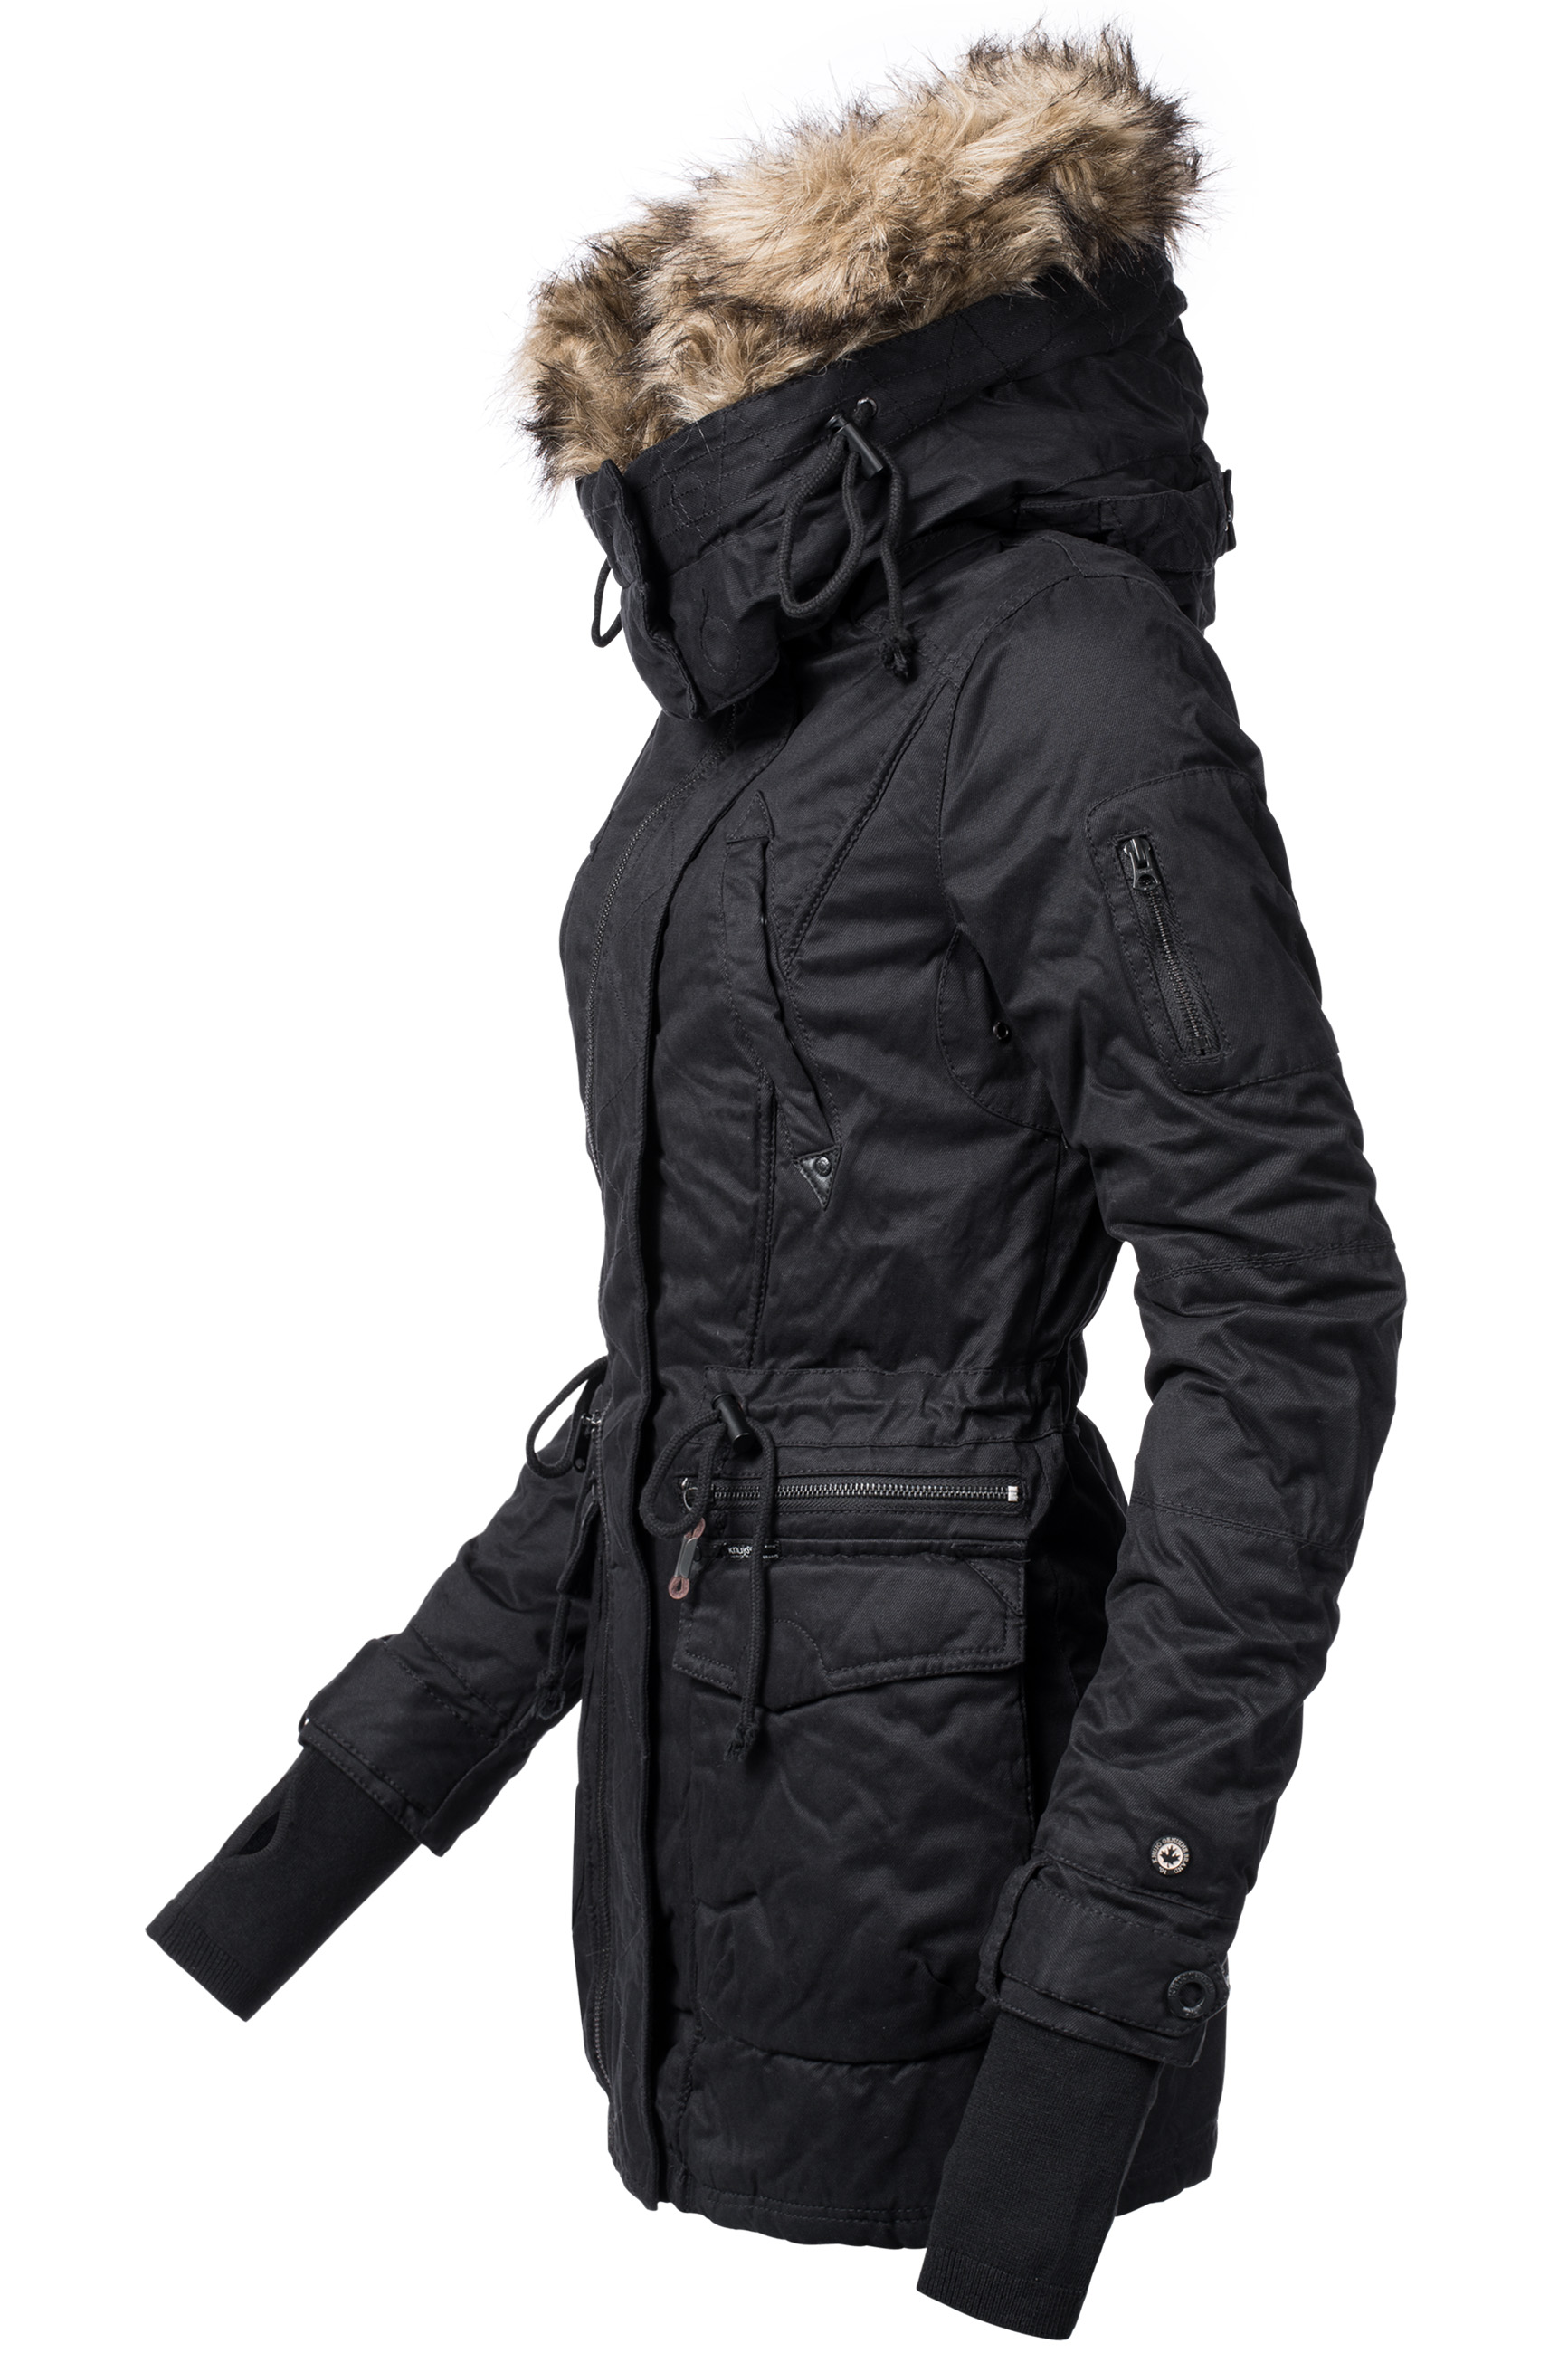 khujo chevril damen winter baumwoll parka mantel jacke kunstpelz kapuze ebay. Black Bedroom Furniture Sets. Home Design Ideas